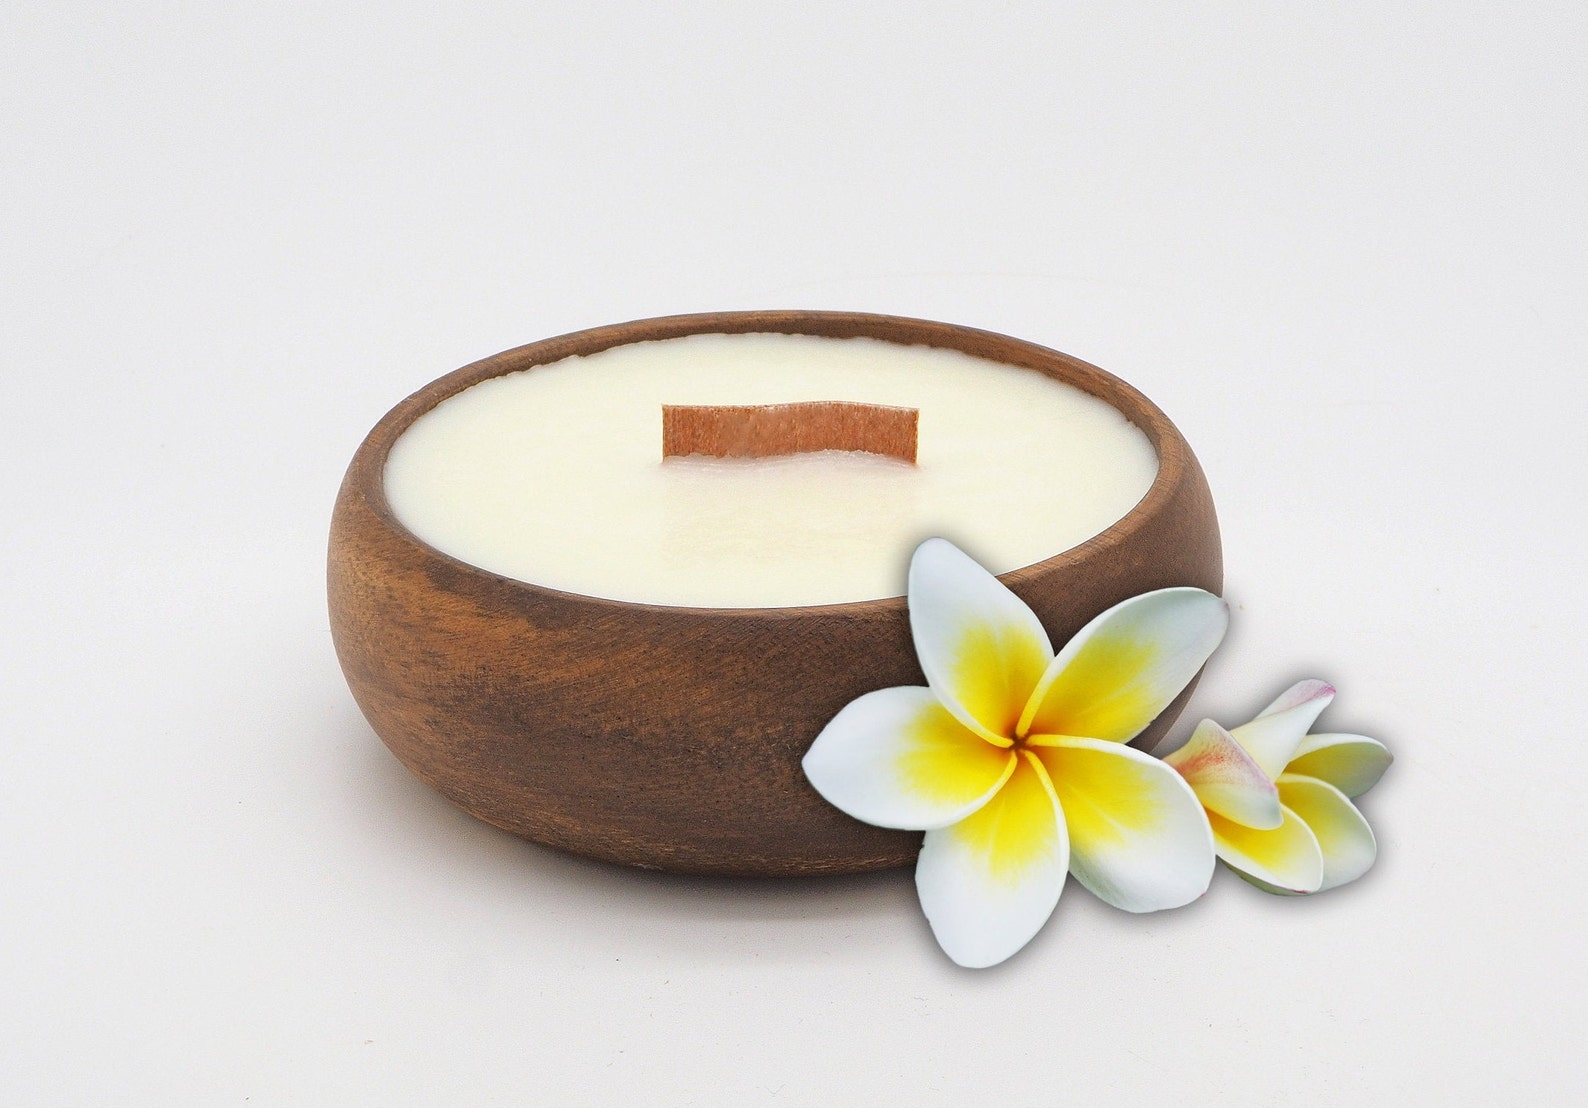 Soy plumeria-scented candle in a coconut shell